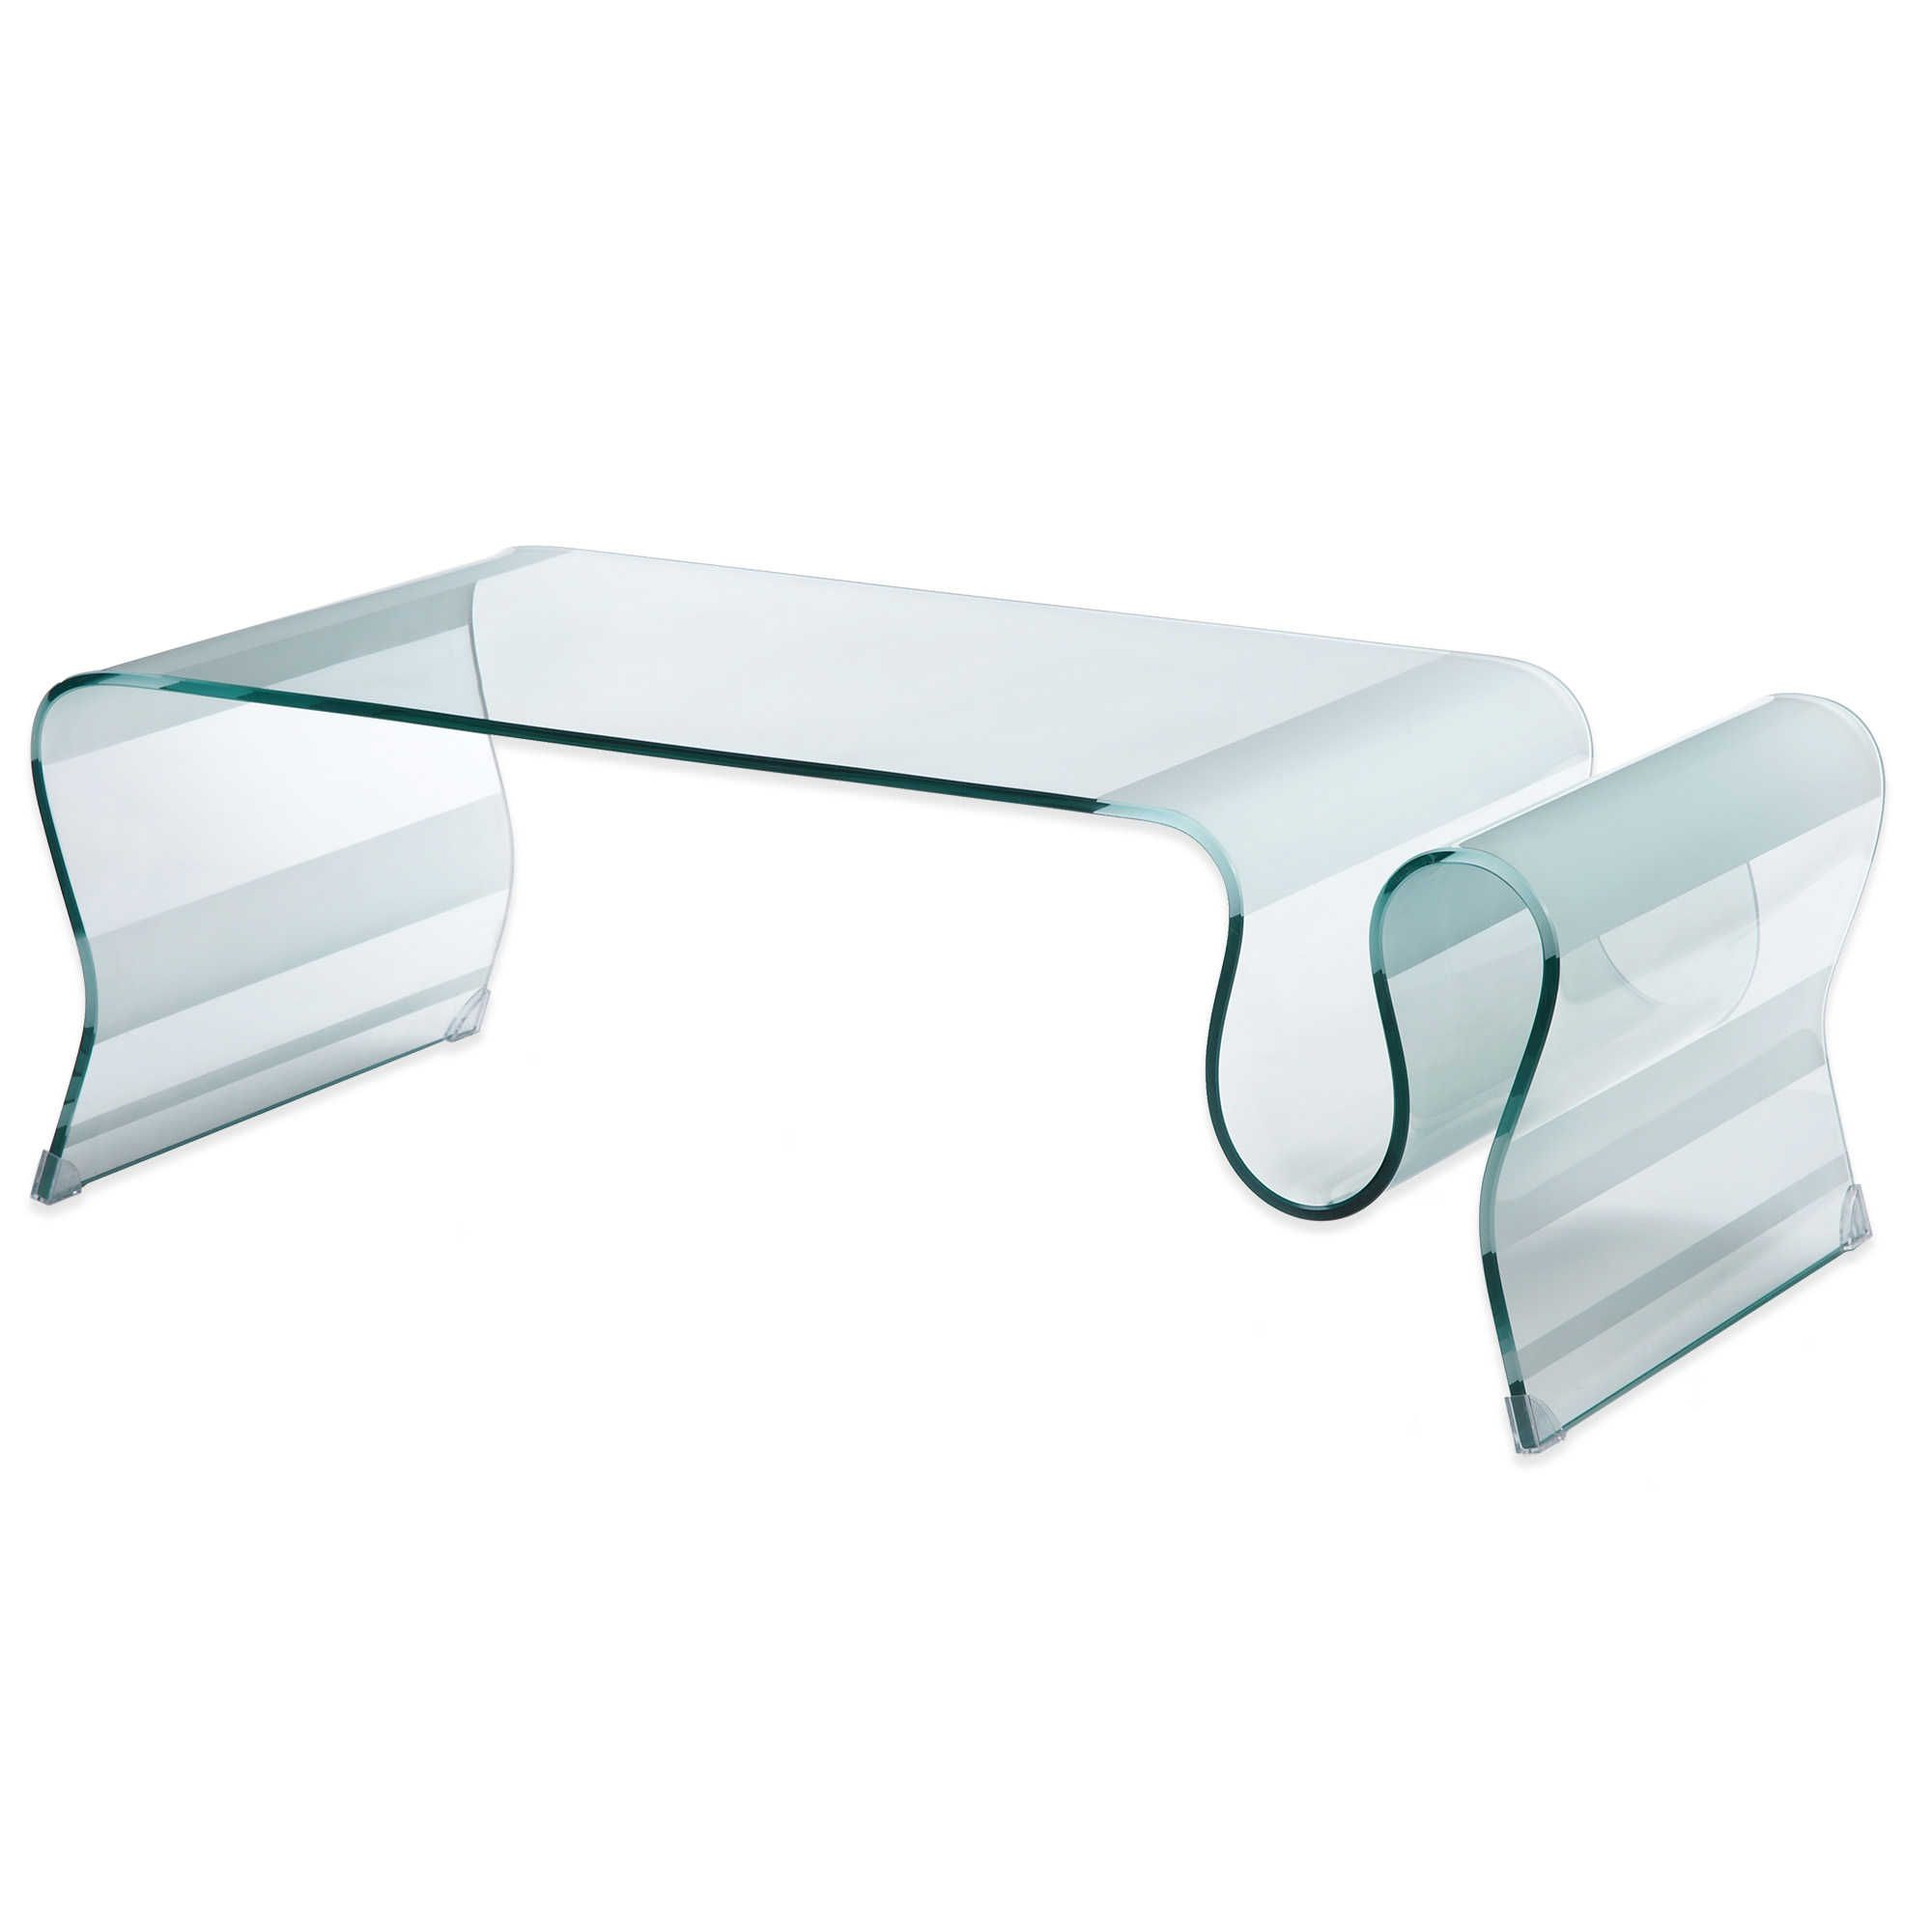 Measures 23 5 D X 49 8 W X 17 H 450 20 Bbb Coffee Table Ottoman Coffee Table Bed Bath And Beyond [ 2000 x 2000 Pixel ]